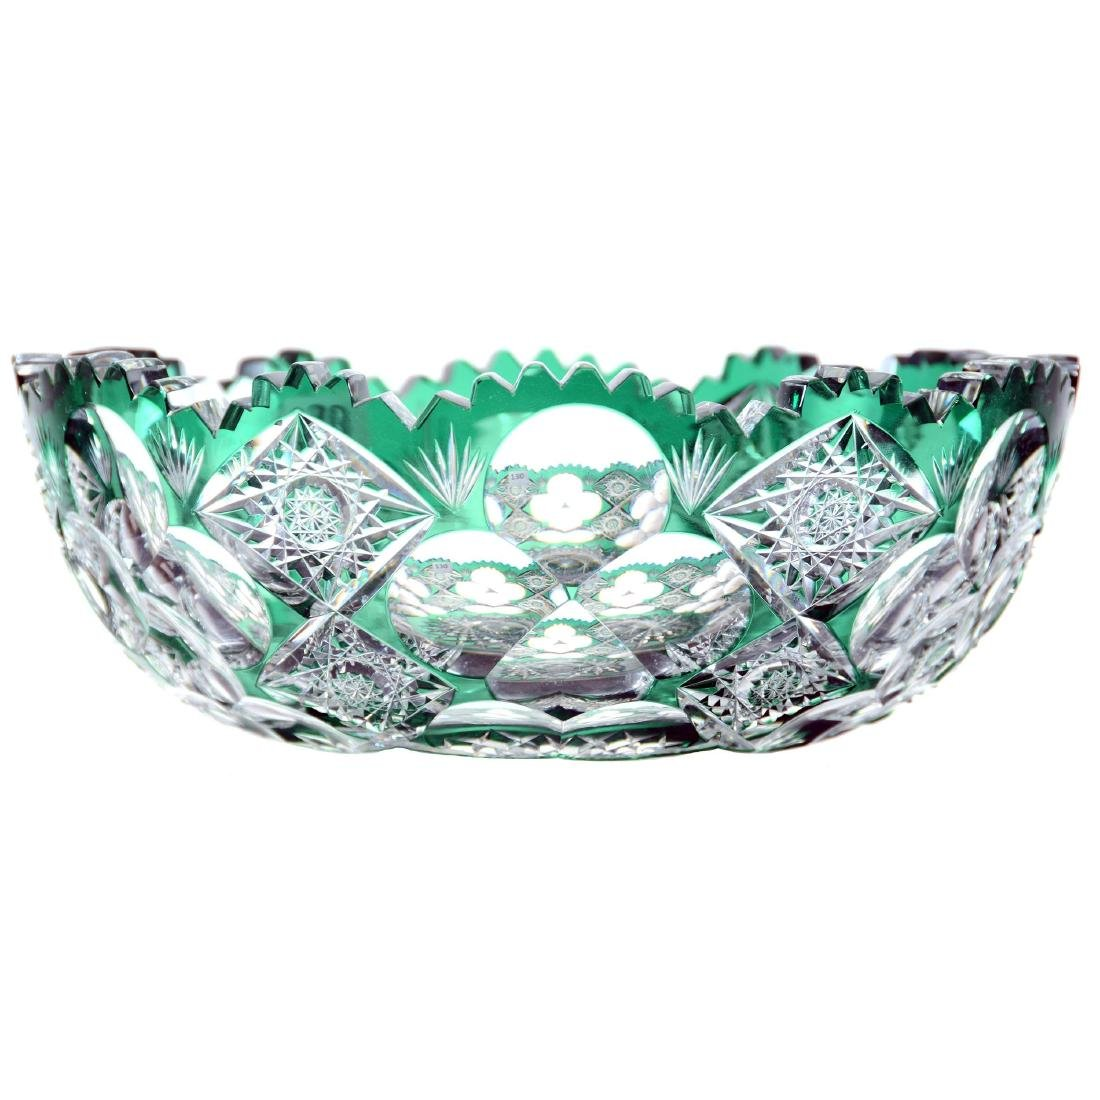 "Bowl - 3"" X 8.5"" - Emerald Green Cut to Clear - 2"